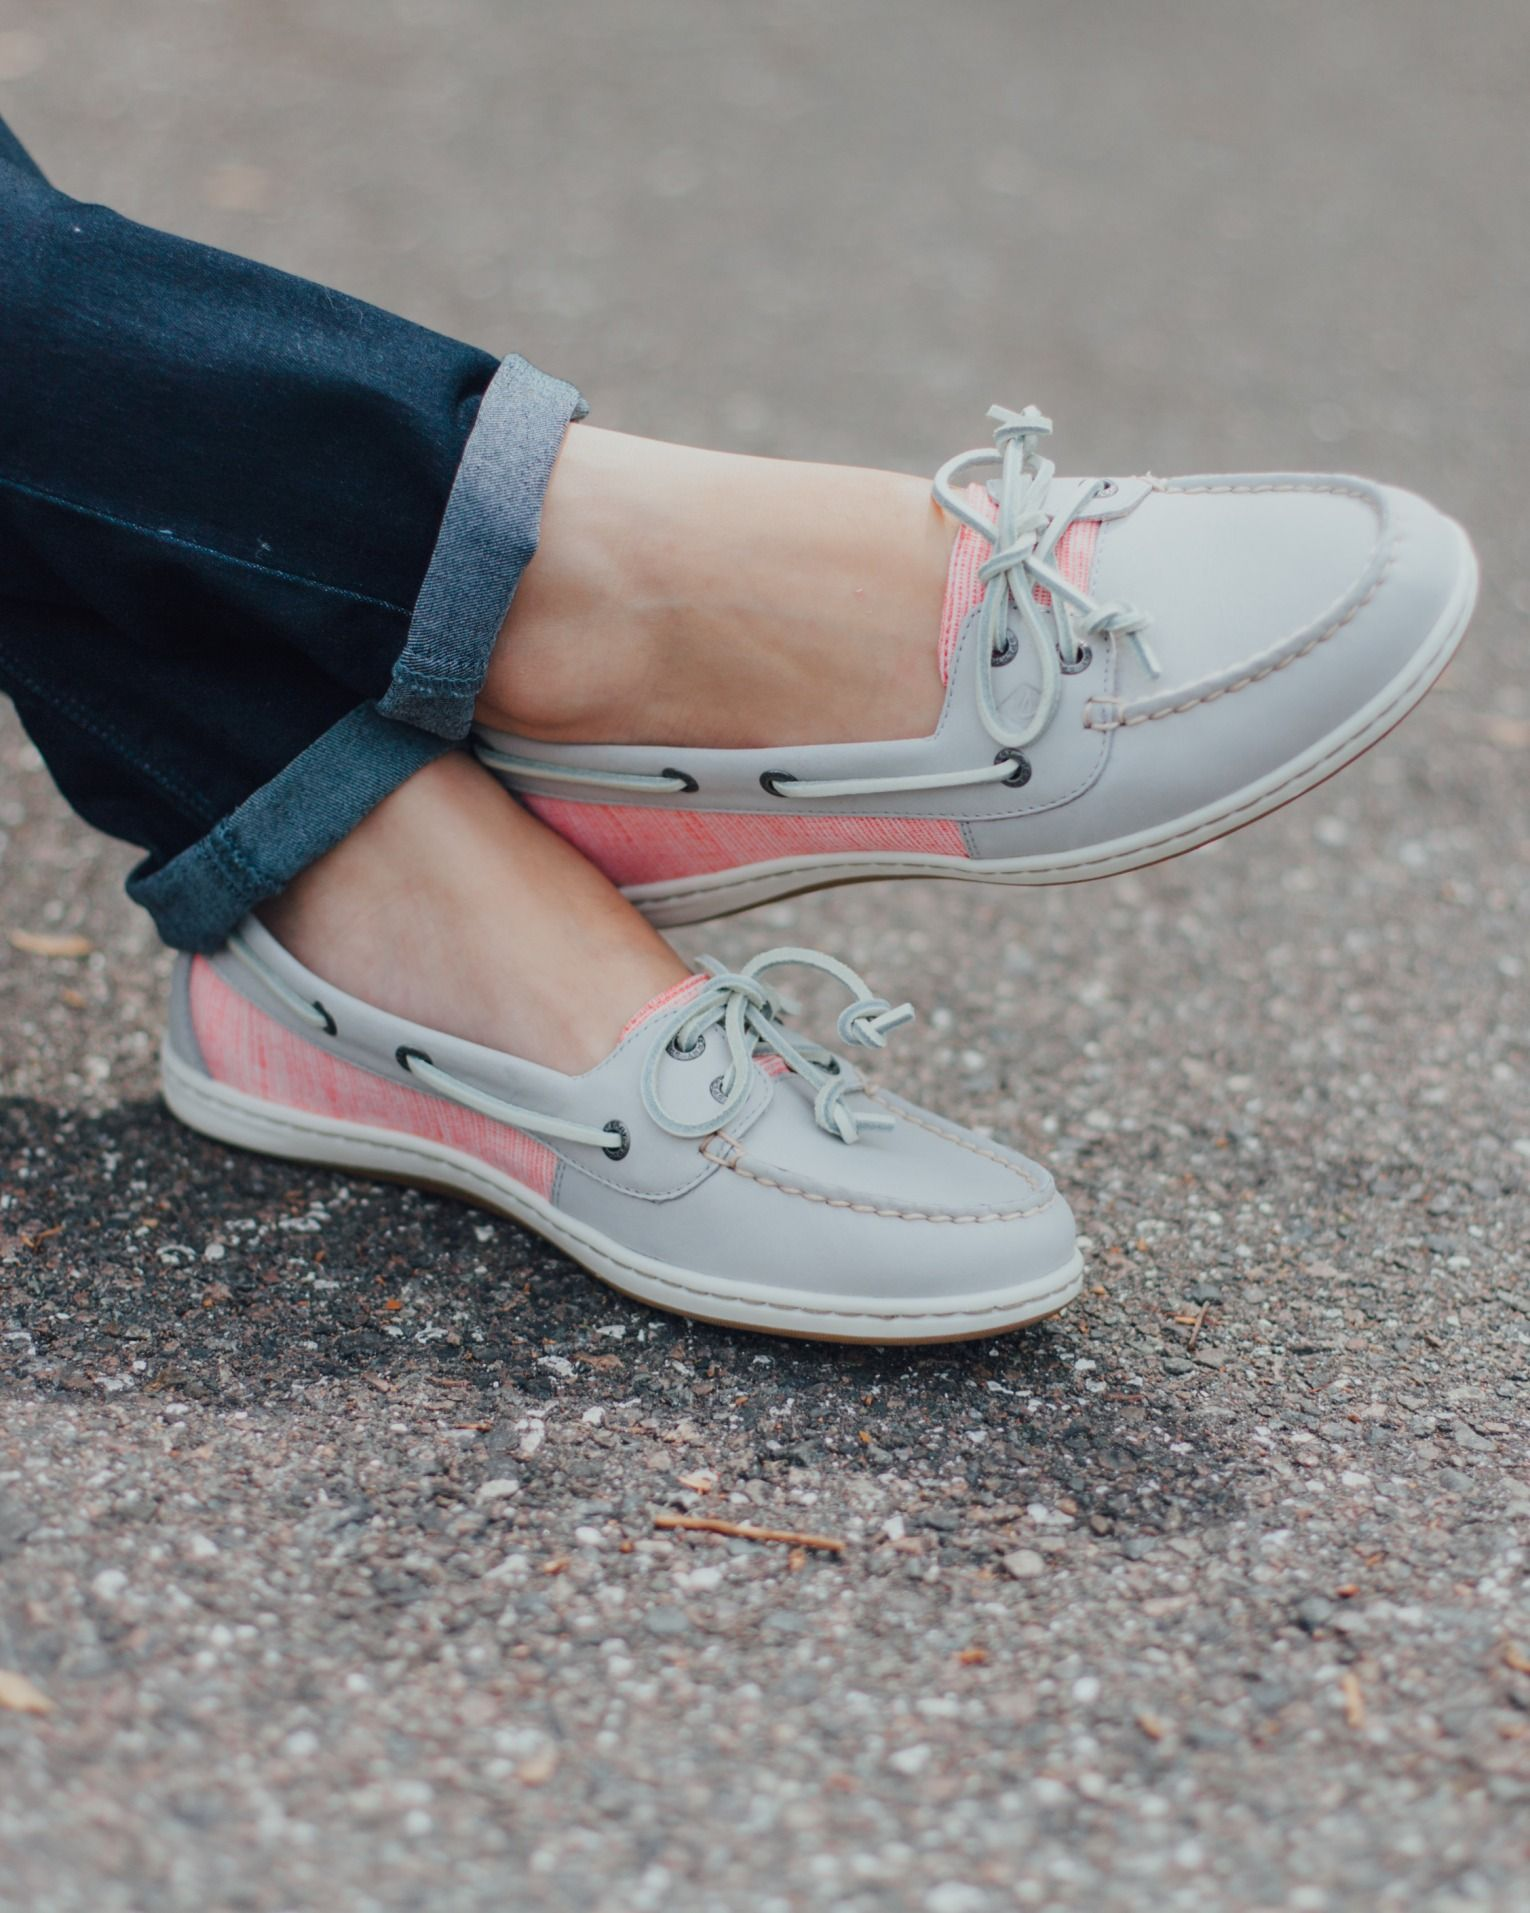 uk availability a89ae 9add7 They re ultra comfortable and pair wonderfully with denim, skirts,  sundresses and more! What s your favorite way to style Sperry shoes